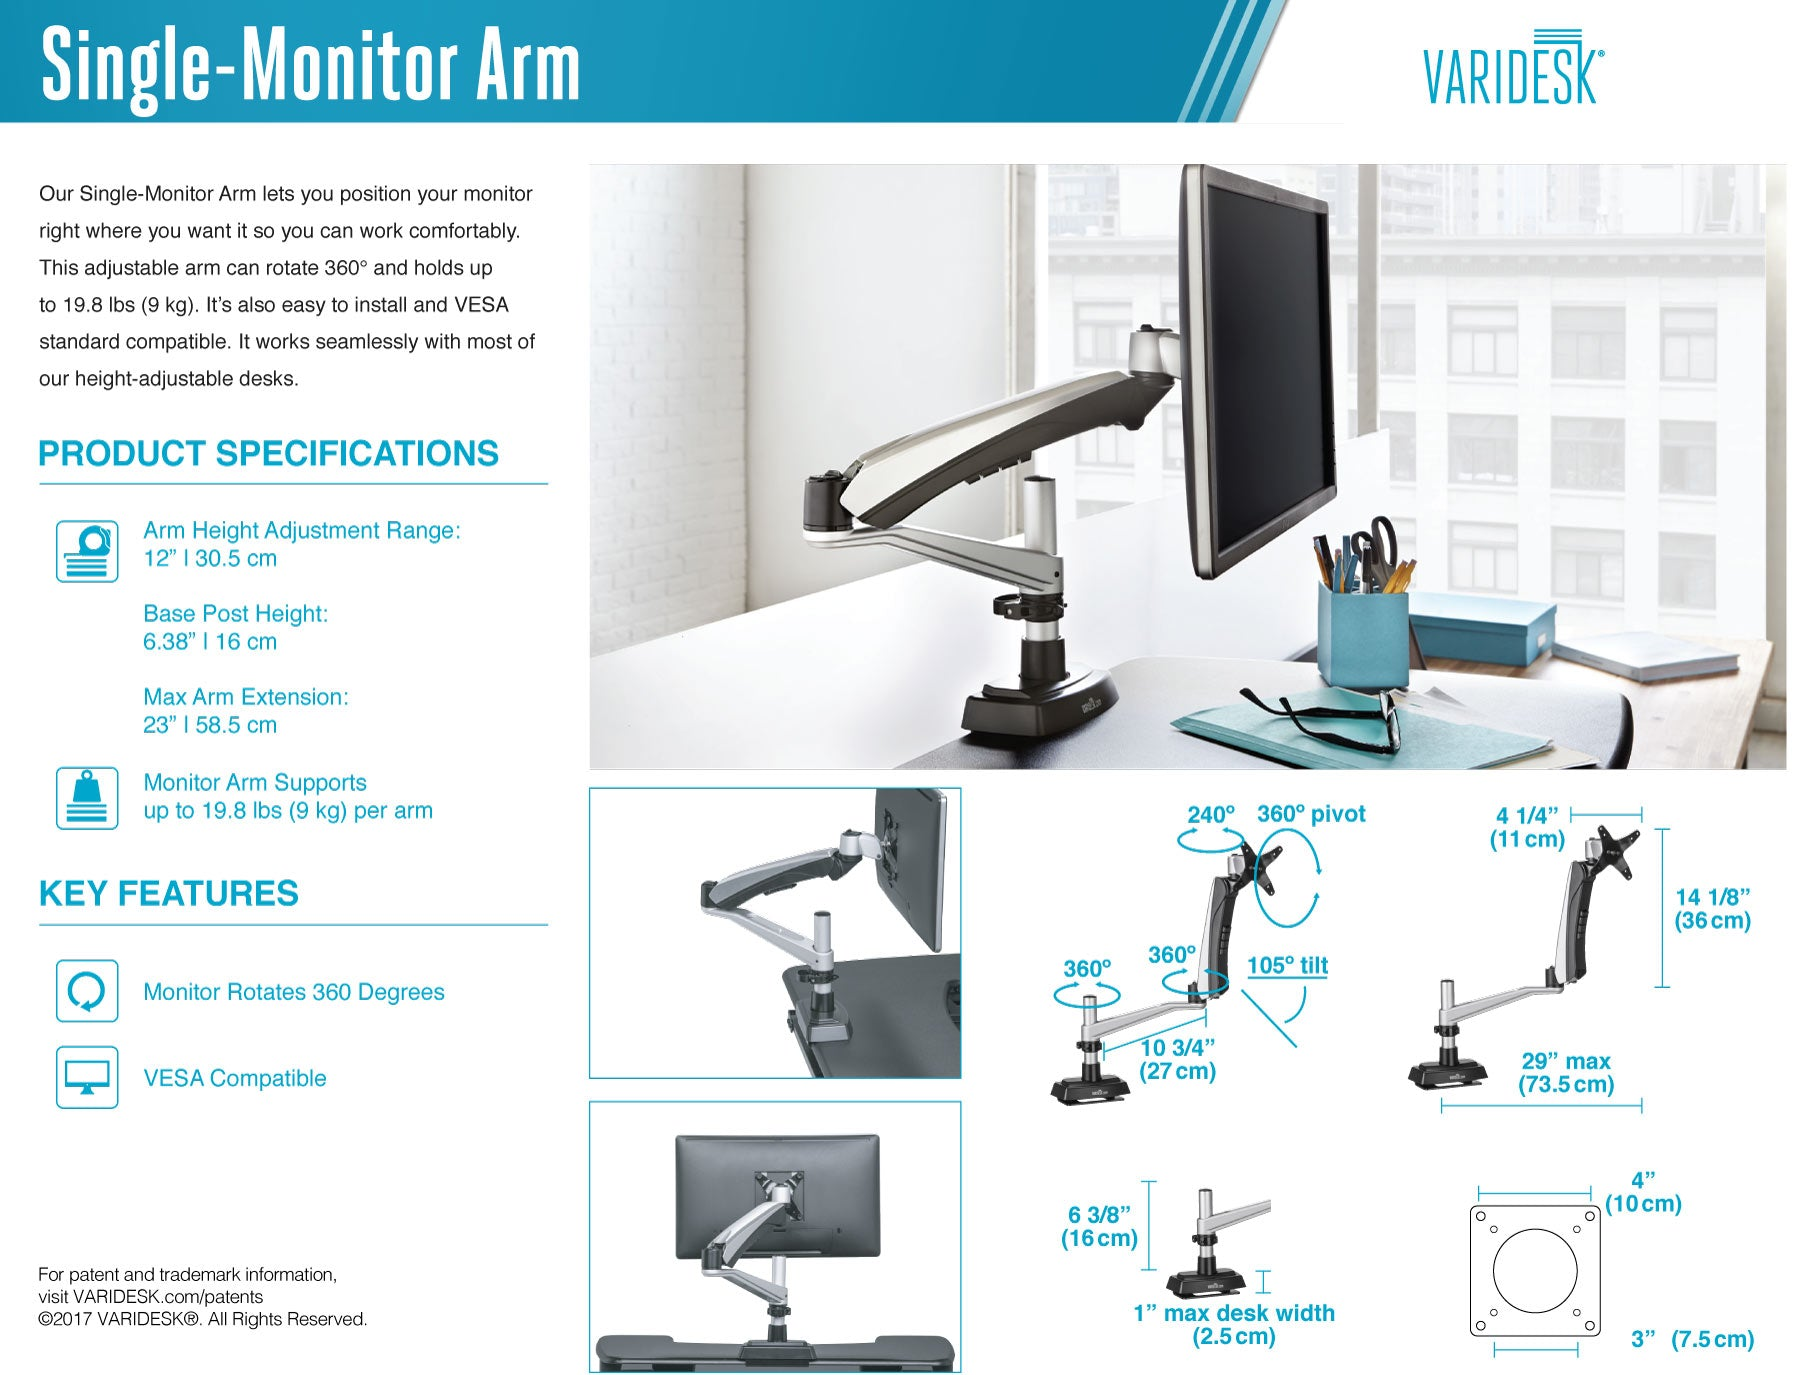 varidesk-single-monitor-arm-tech-specs